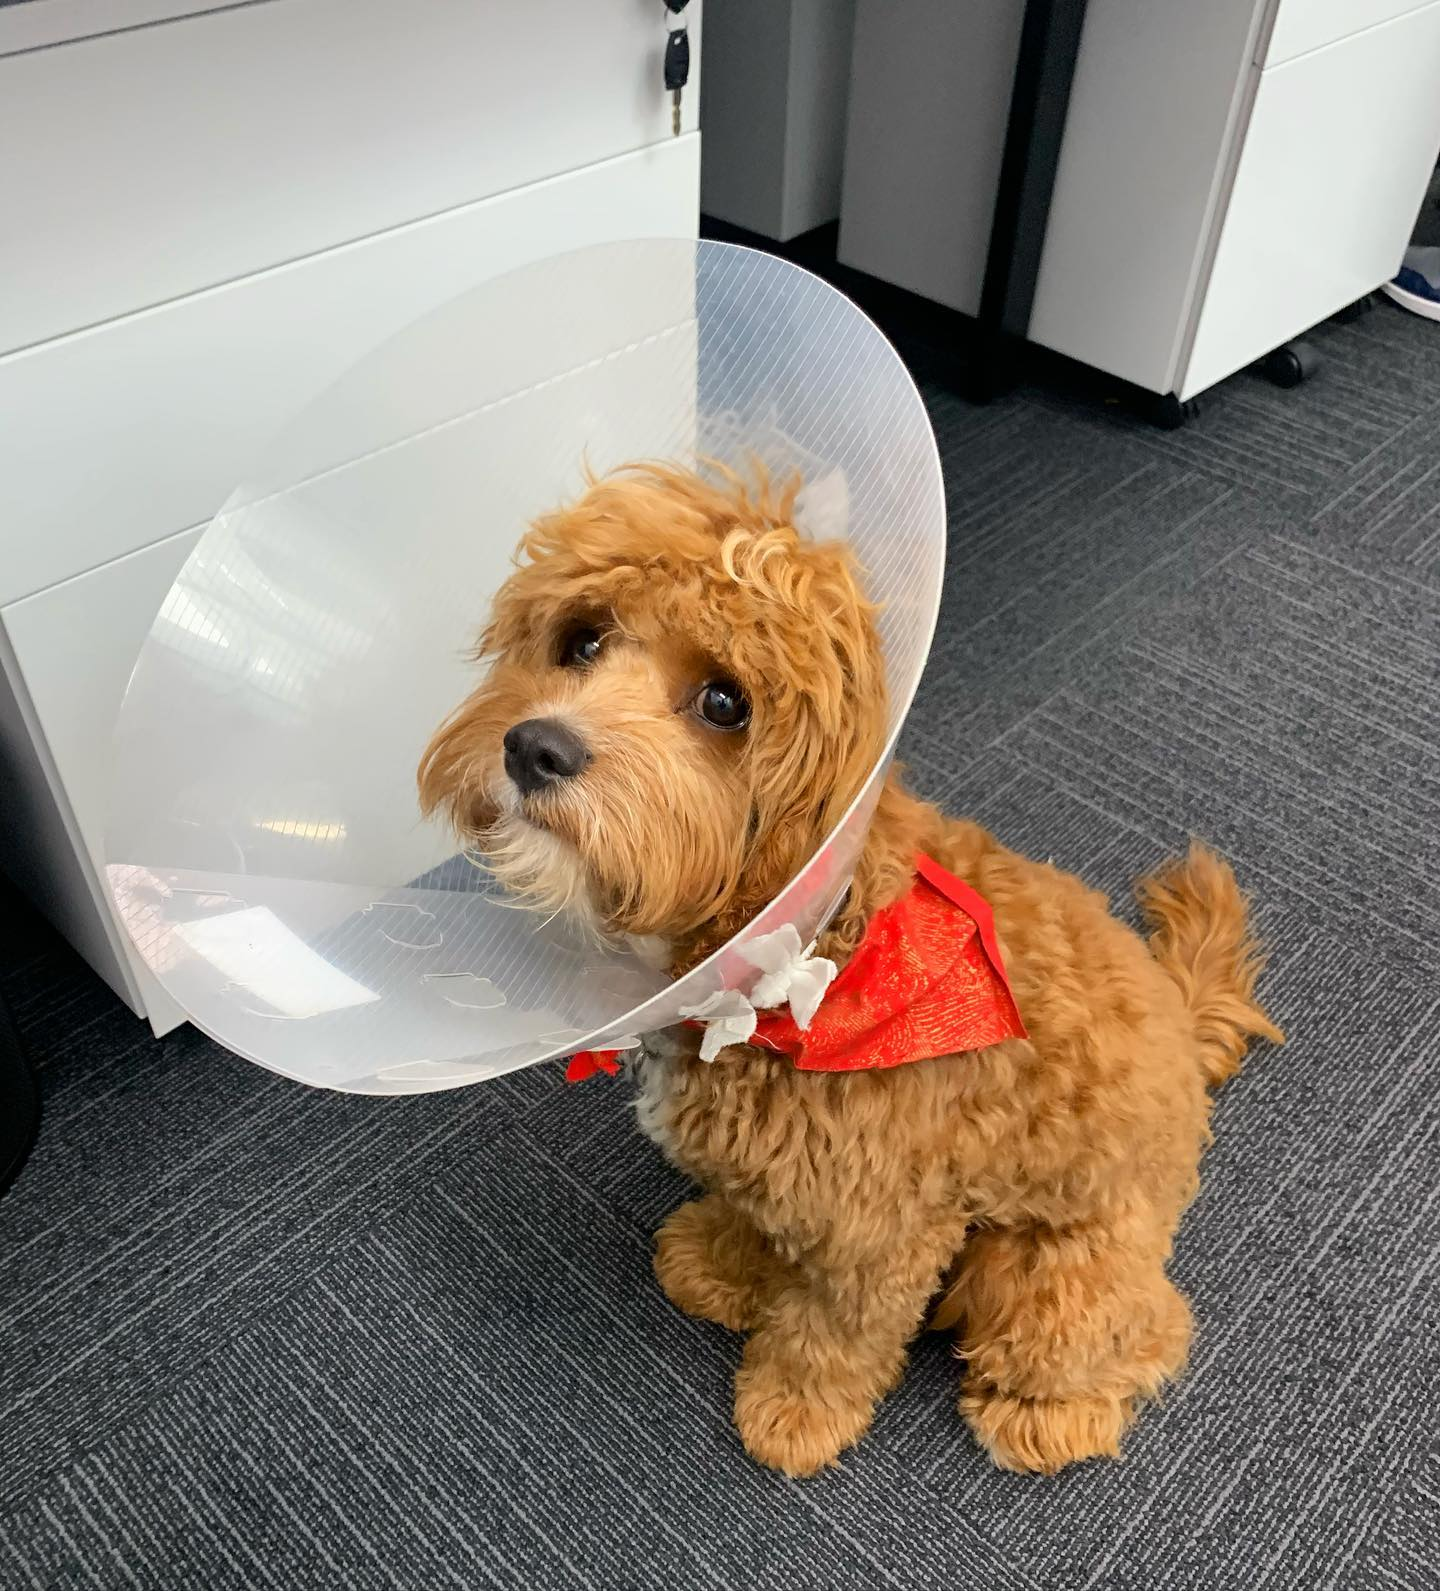 Our bundle of joy... Even with a cone on his head 🥰 HAPPY FRIDAY!! #dowhatyoulove #workhappy